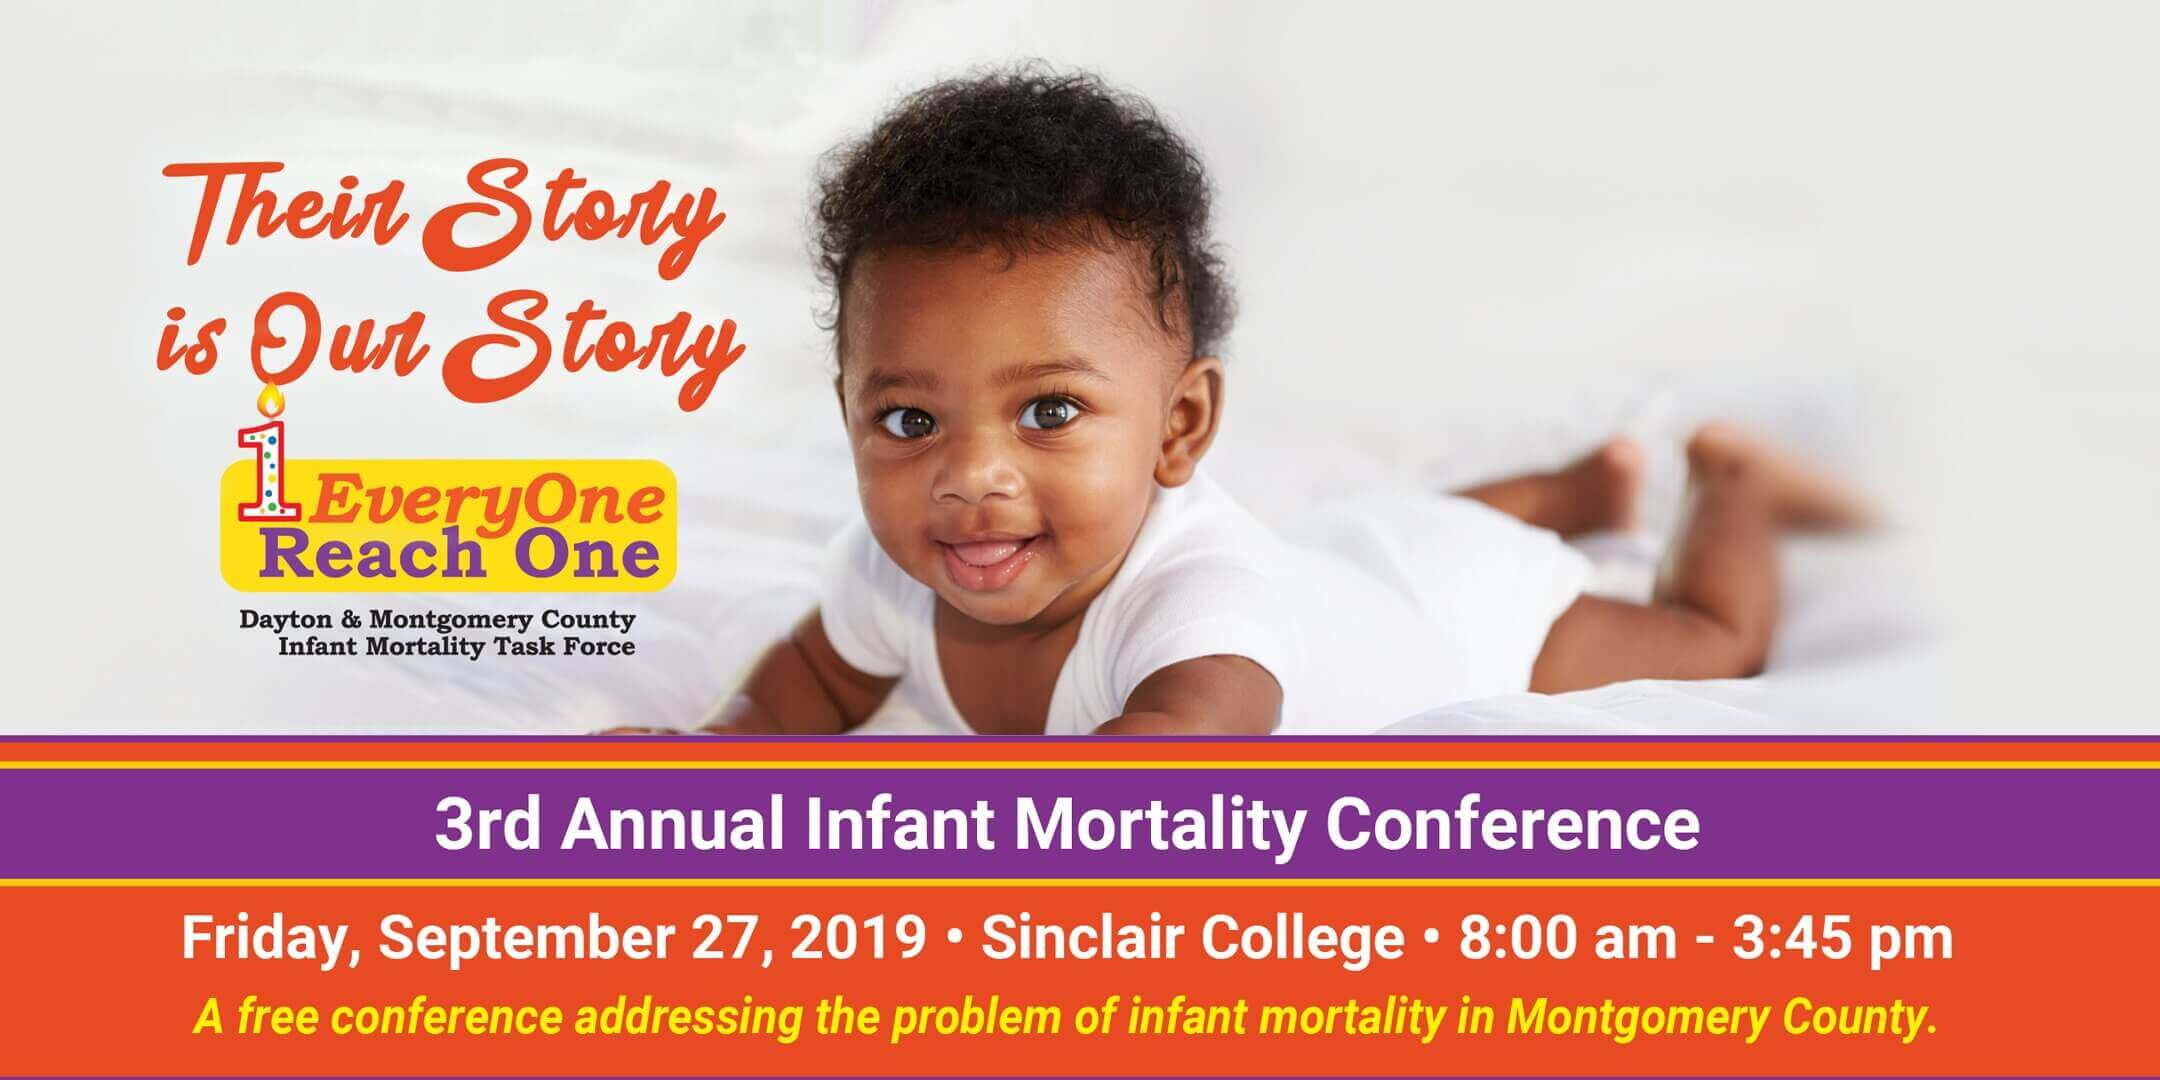 3rd Annual Infant Mortality Conference